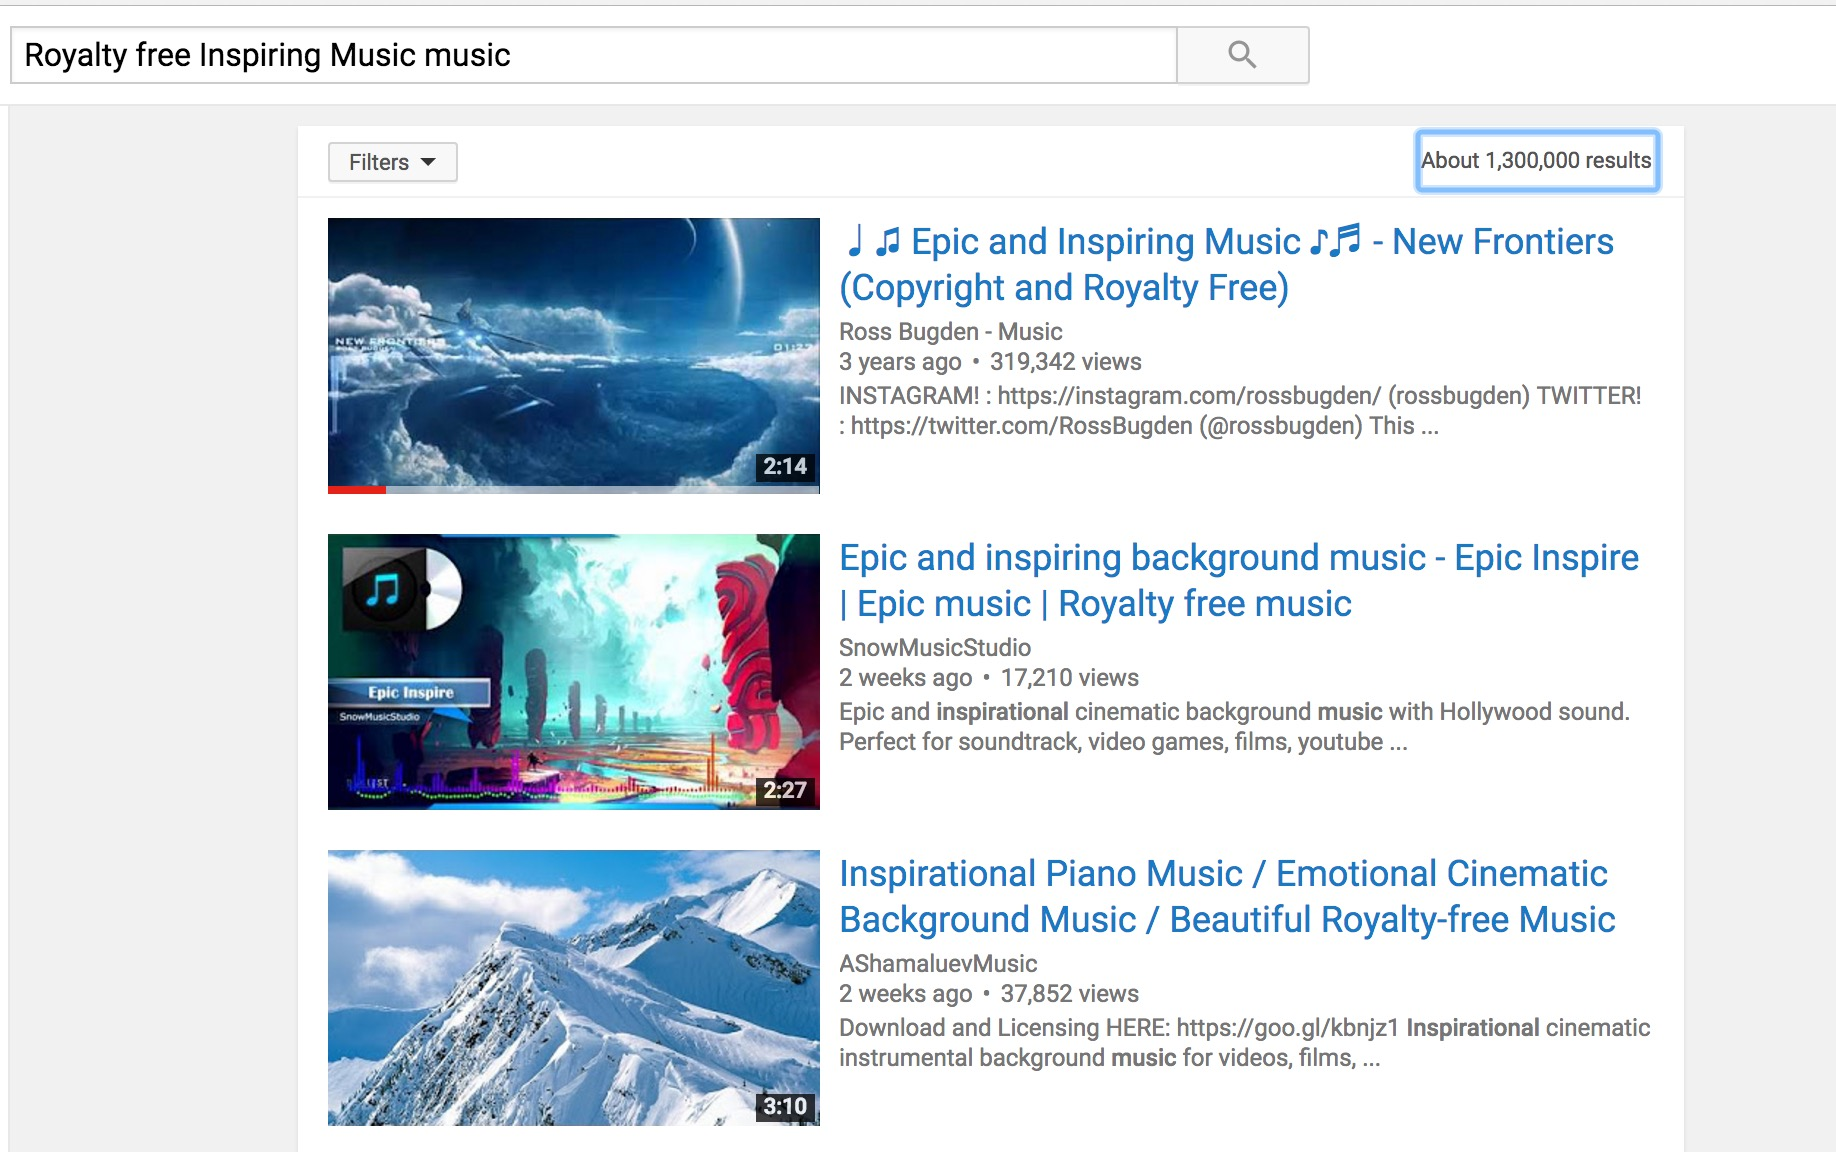 find background music from youtube videos using YouTube